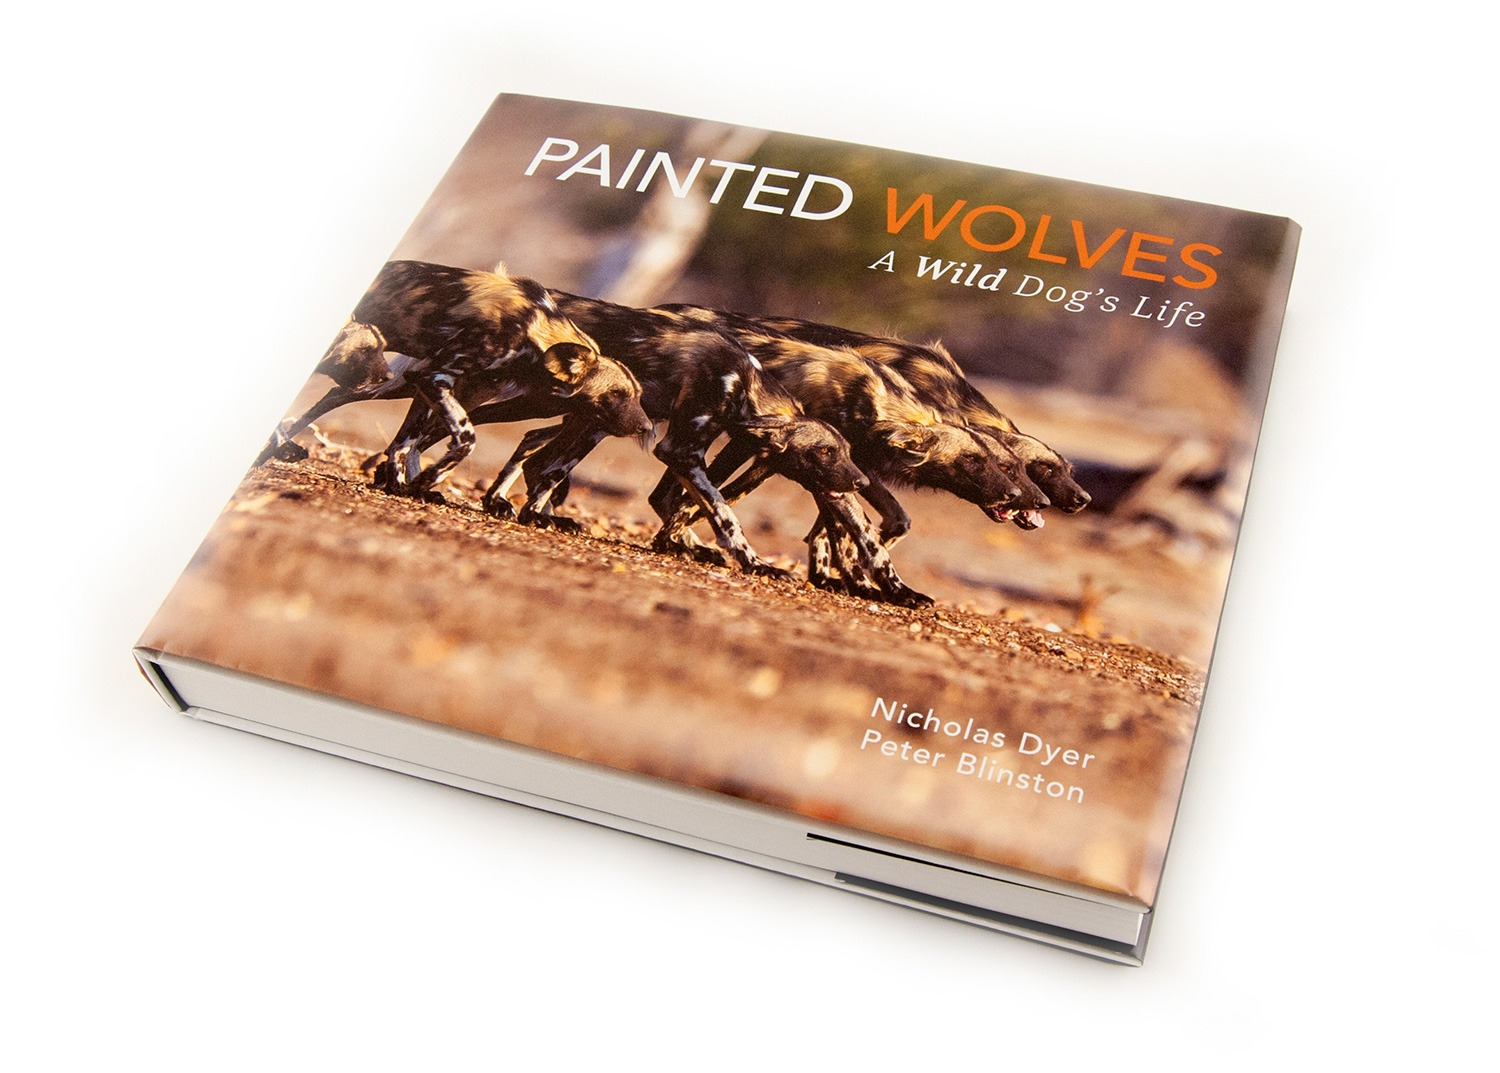 Launch of Painted Wolves: A Wild Dog's Life! in Australia